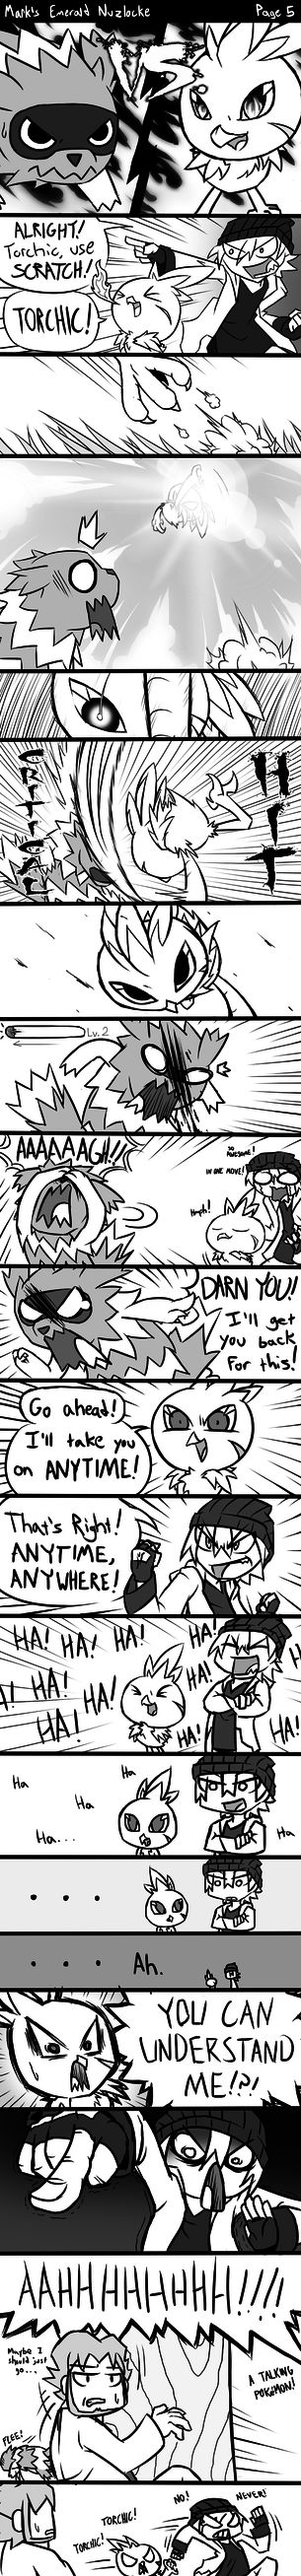 Mark's Emerald Nuzlocke - 05 by RakkuGuy on DeviantArt